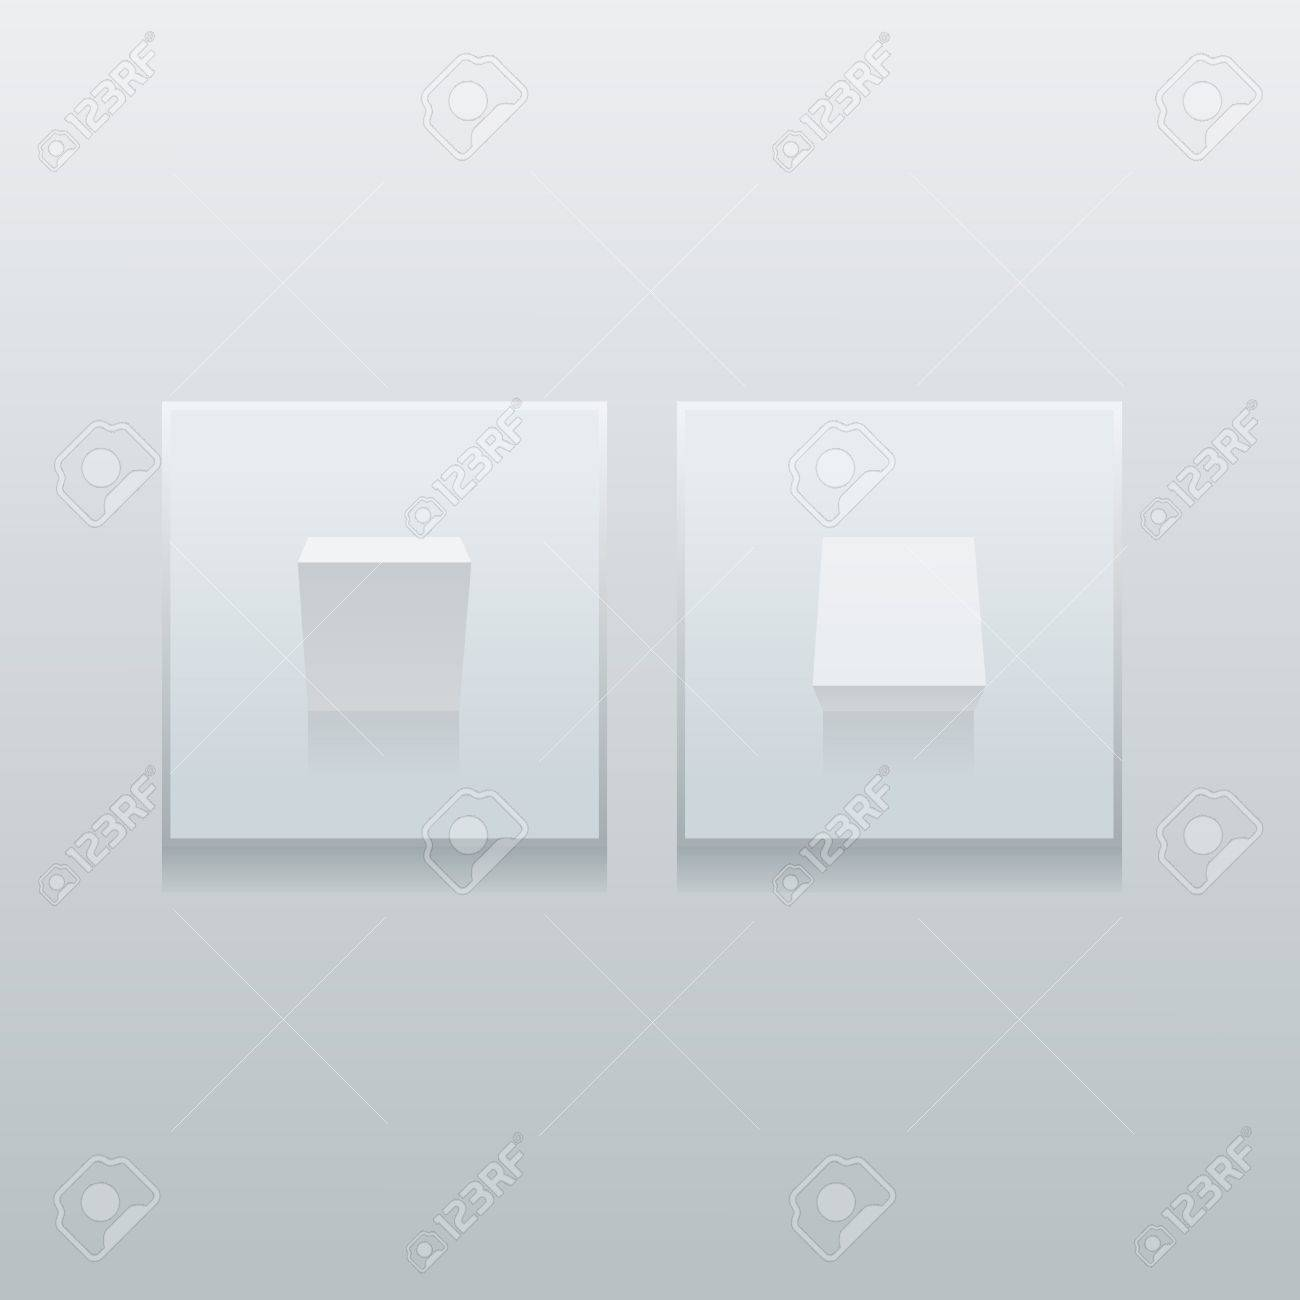 Two modern simple minimalistic light switches on the wall  Easy editable layered vector illustration Stock Vector - 20699733